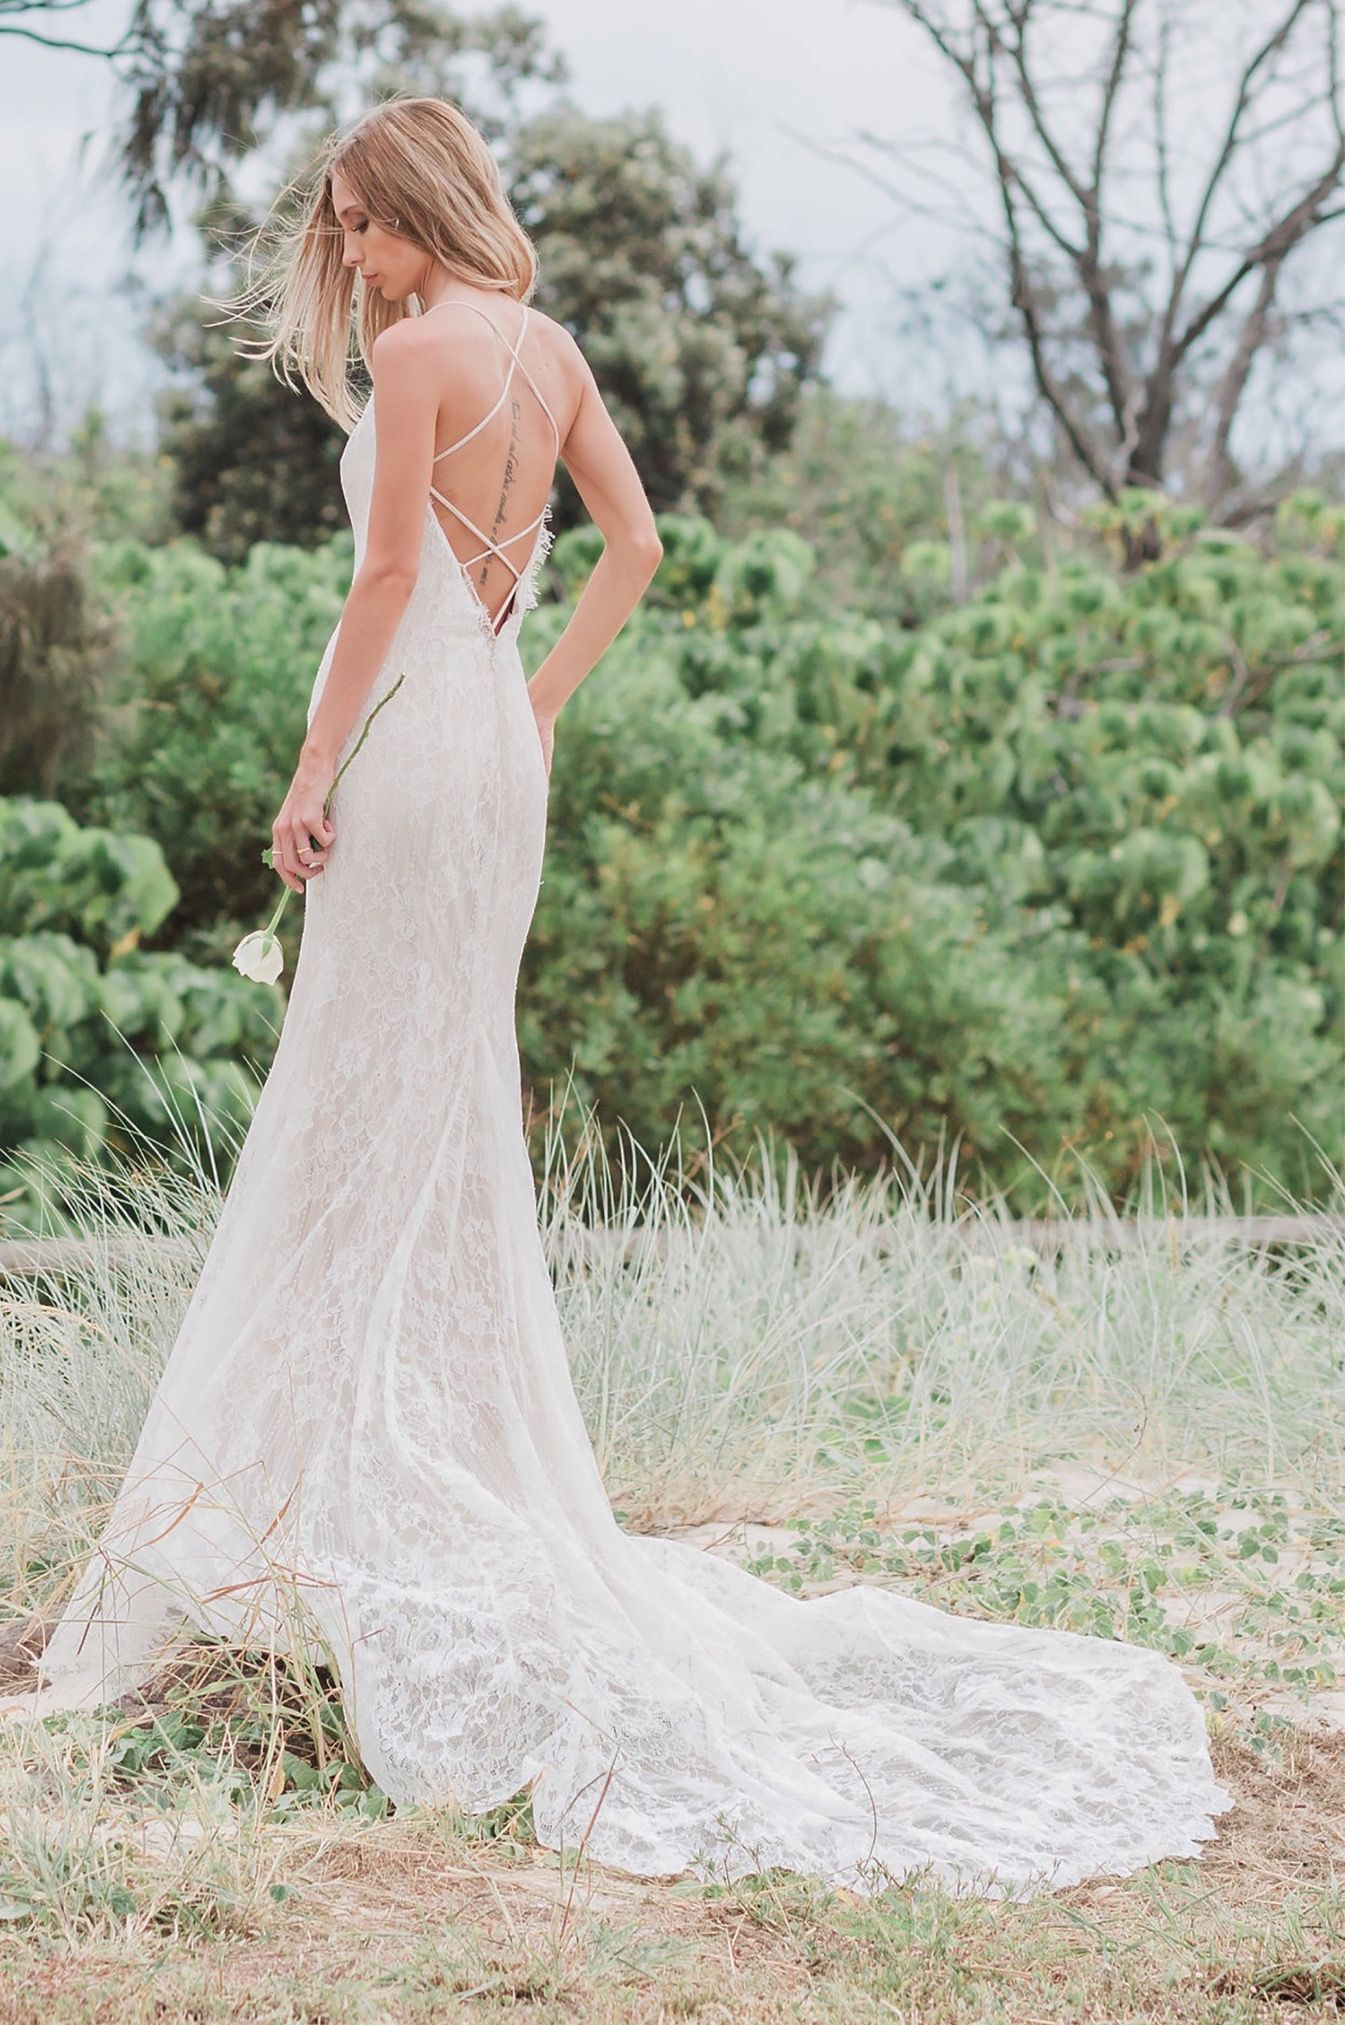 Gorgeous gorgeous bride inspiration from our wedding master